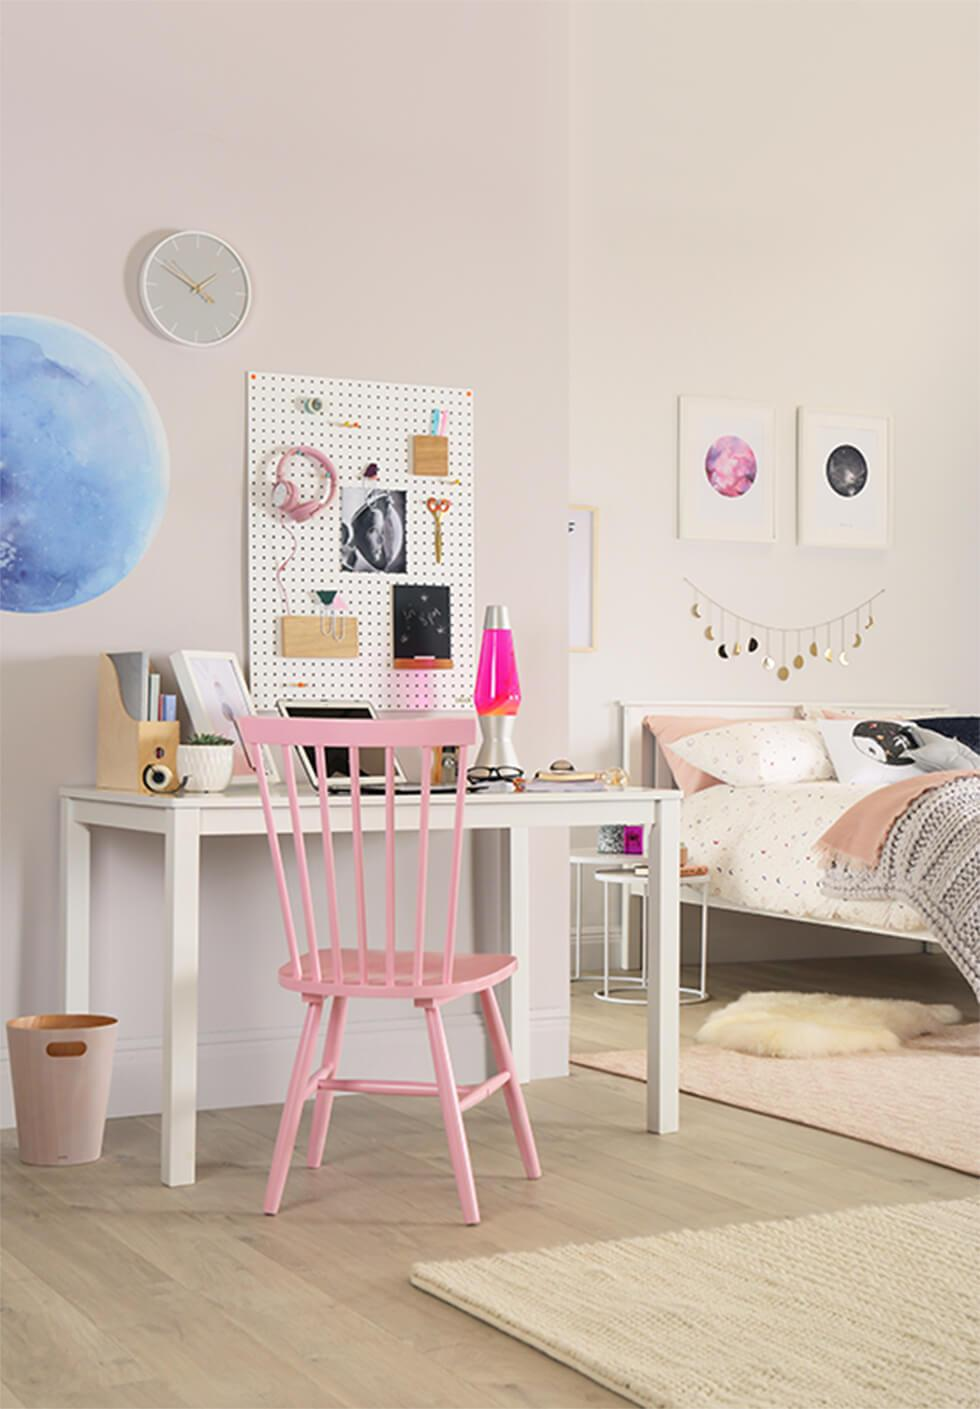 Pink Windsor chair in a soft white bedroom